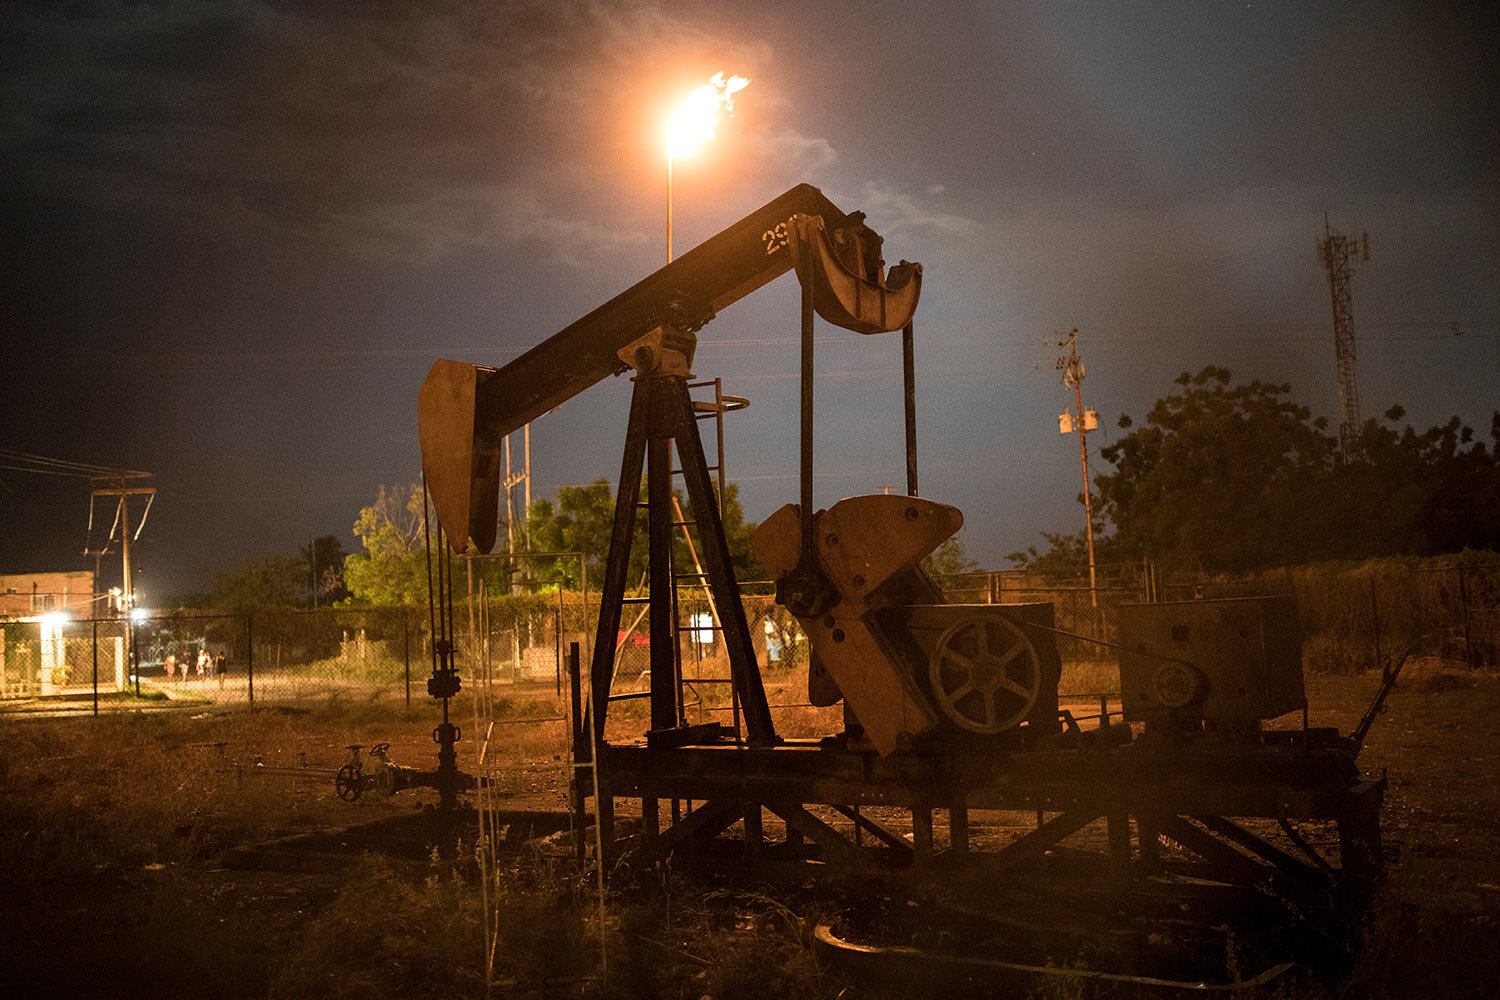 A non-operational oil pump, owned by state-owned oil company PDVSA, stands still in Cabimas, Venezuela, May 16, 2019. (AP Photo/Rodrigo Abd)